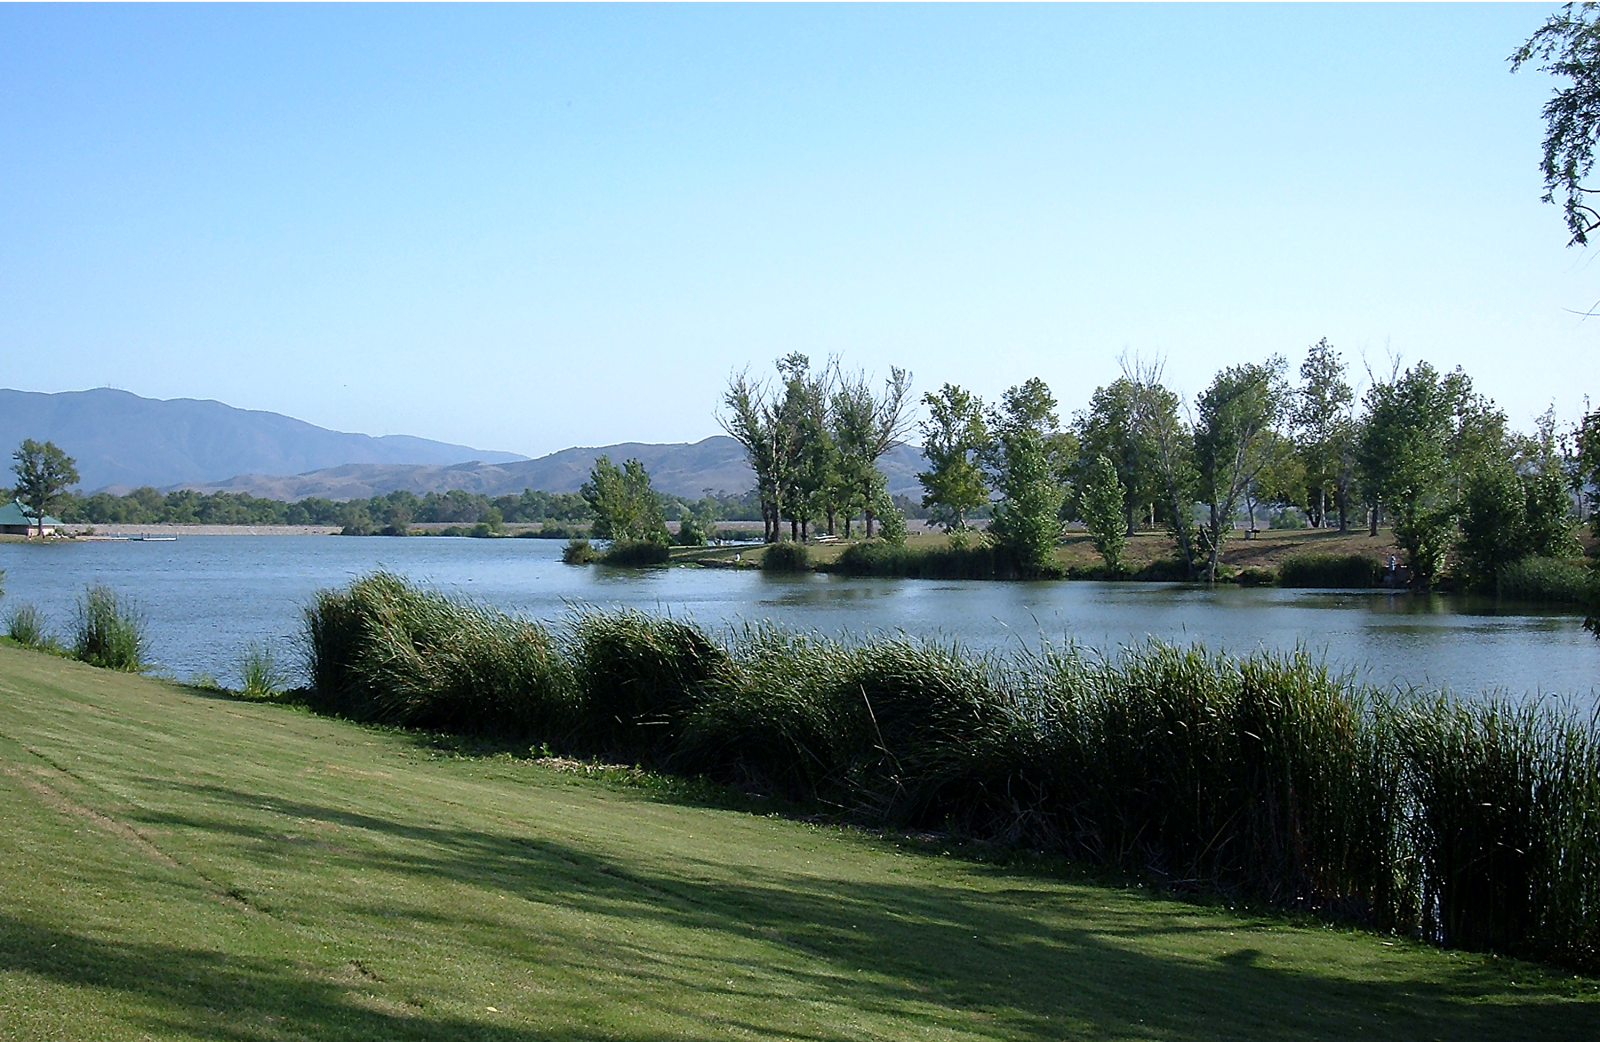 A side view of Prado lake with green grass.